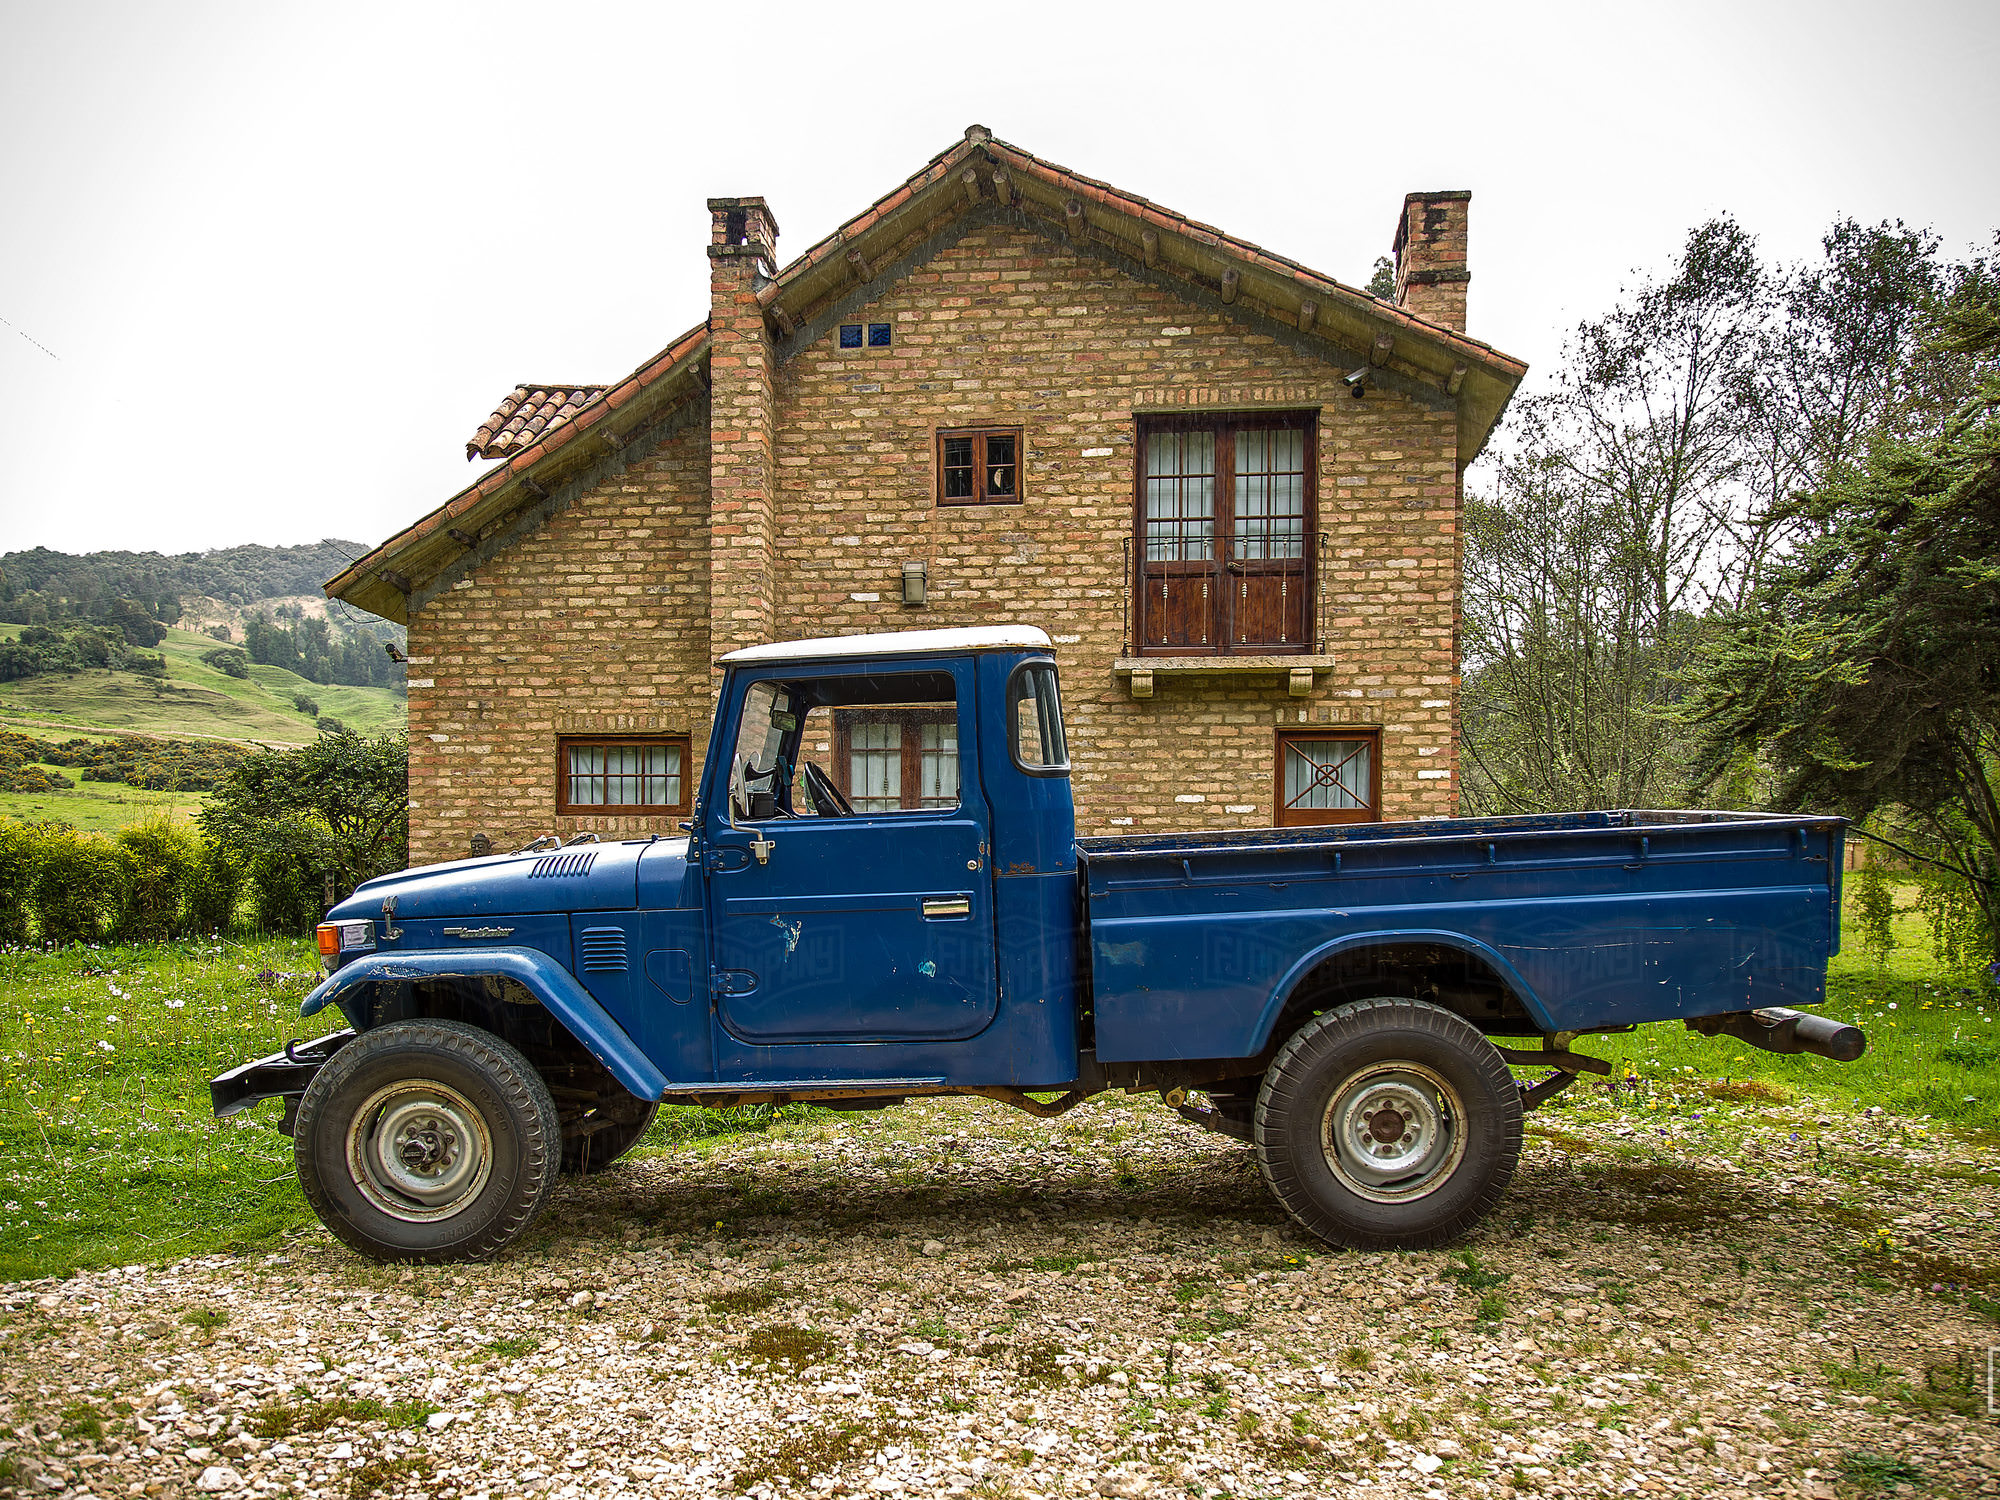 It's tough to find an FJ45 pick-up truck in such great condition.